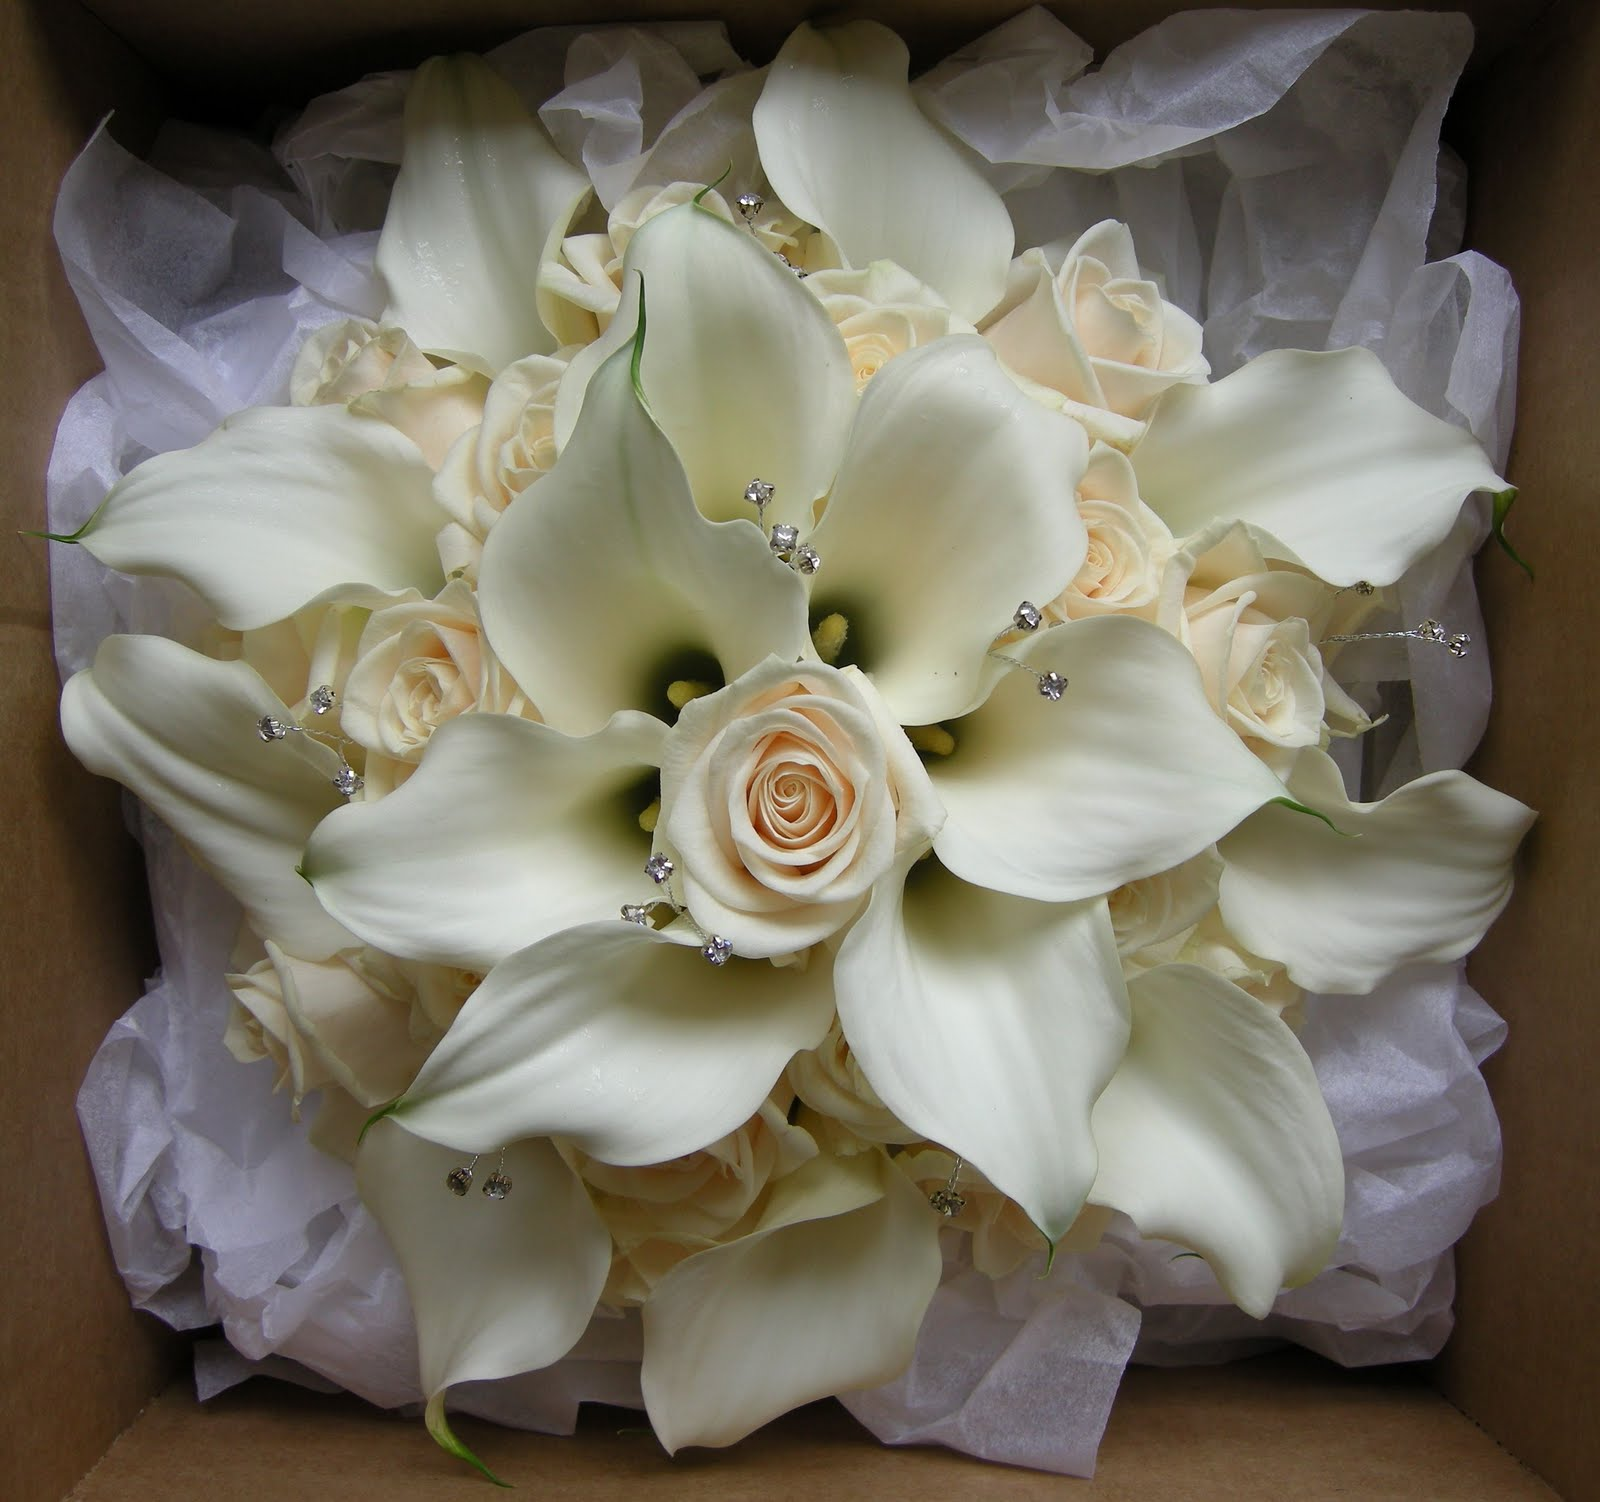 rose and lily wedding bouquets photo - 1